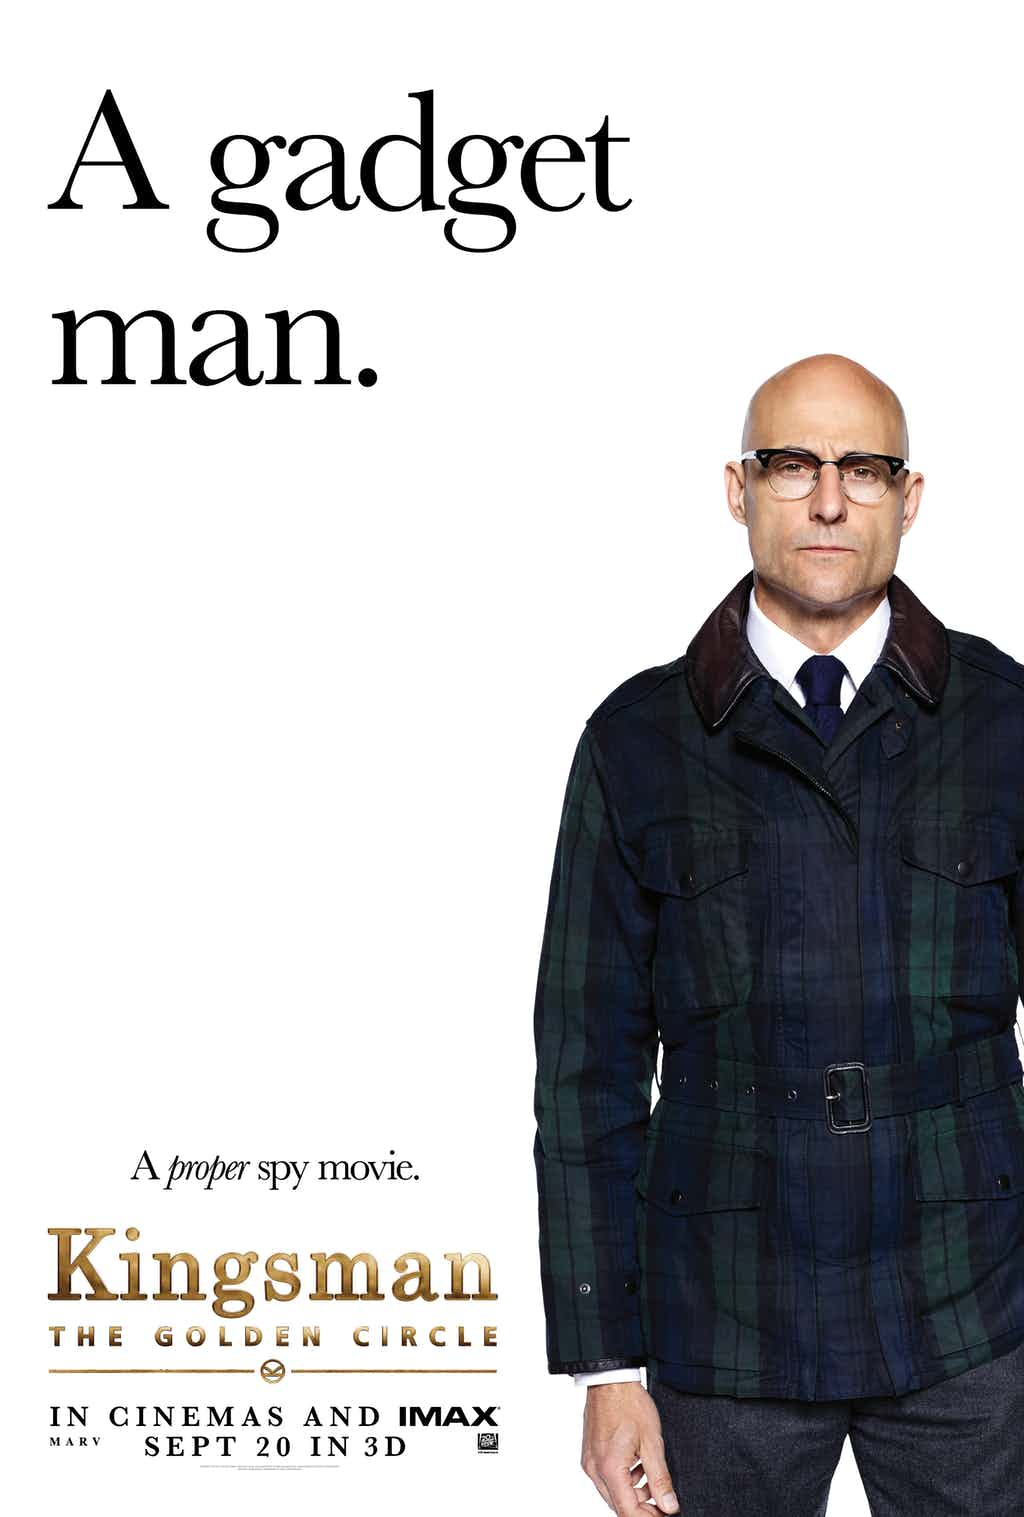 English Manners Meet Southern Charm In Kingsman: The Golden Circle TV Spot